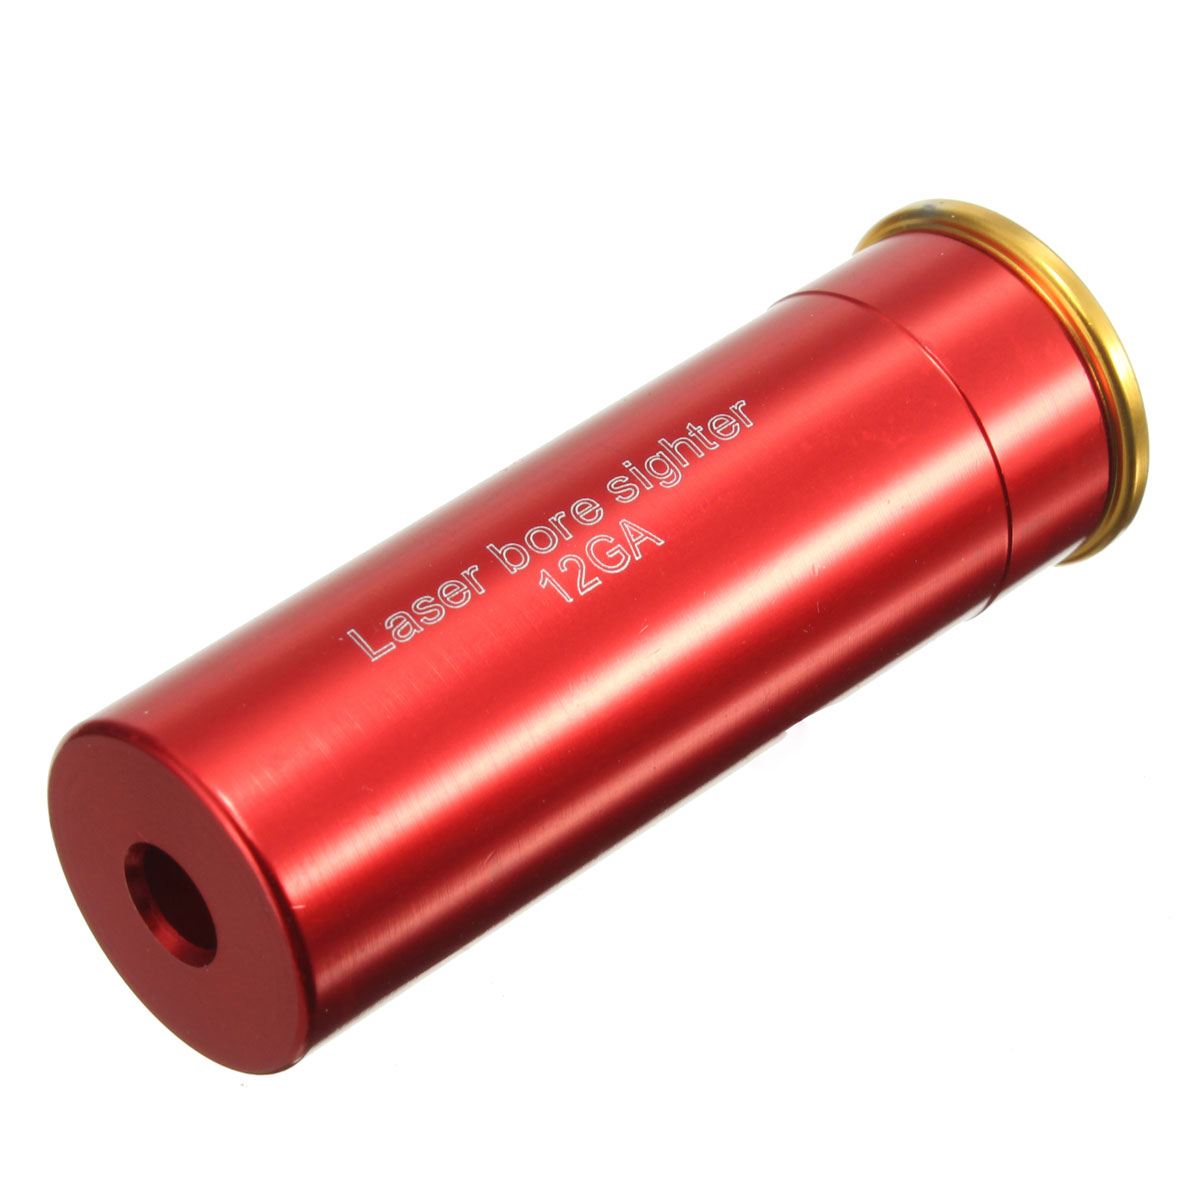 12GA Red Dots Gauge Cartridge Boresighter Shot Bore Sight Scope Airsoft Hunting Copper Tool